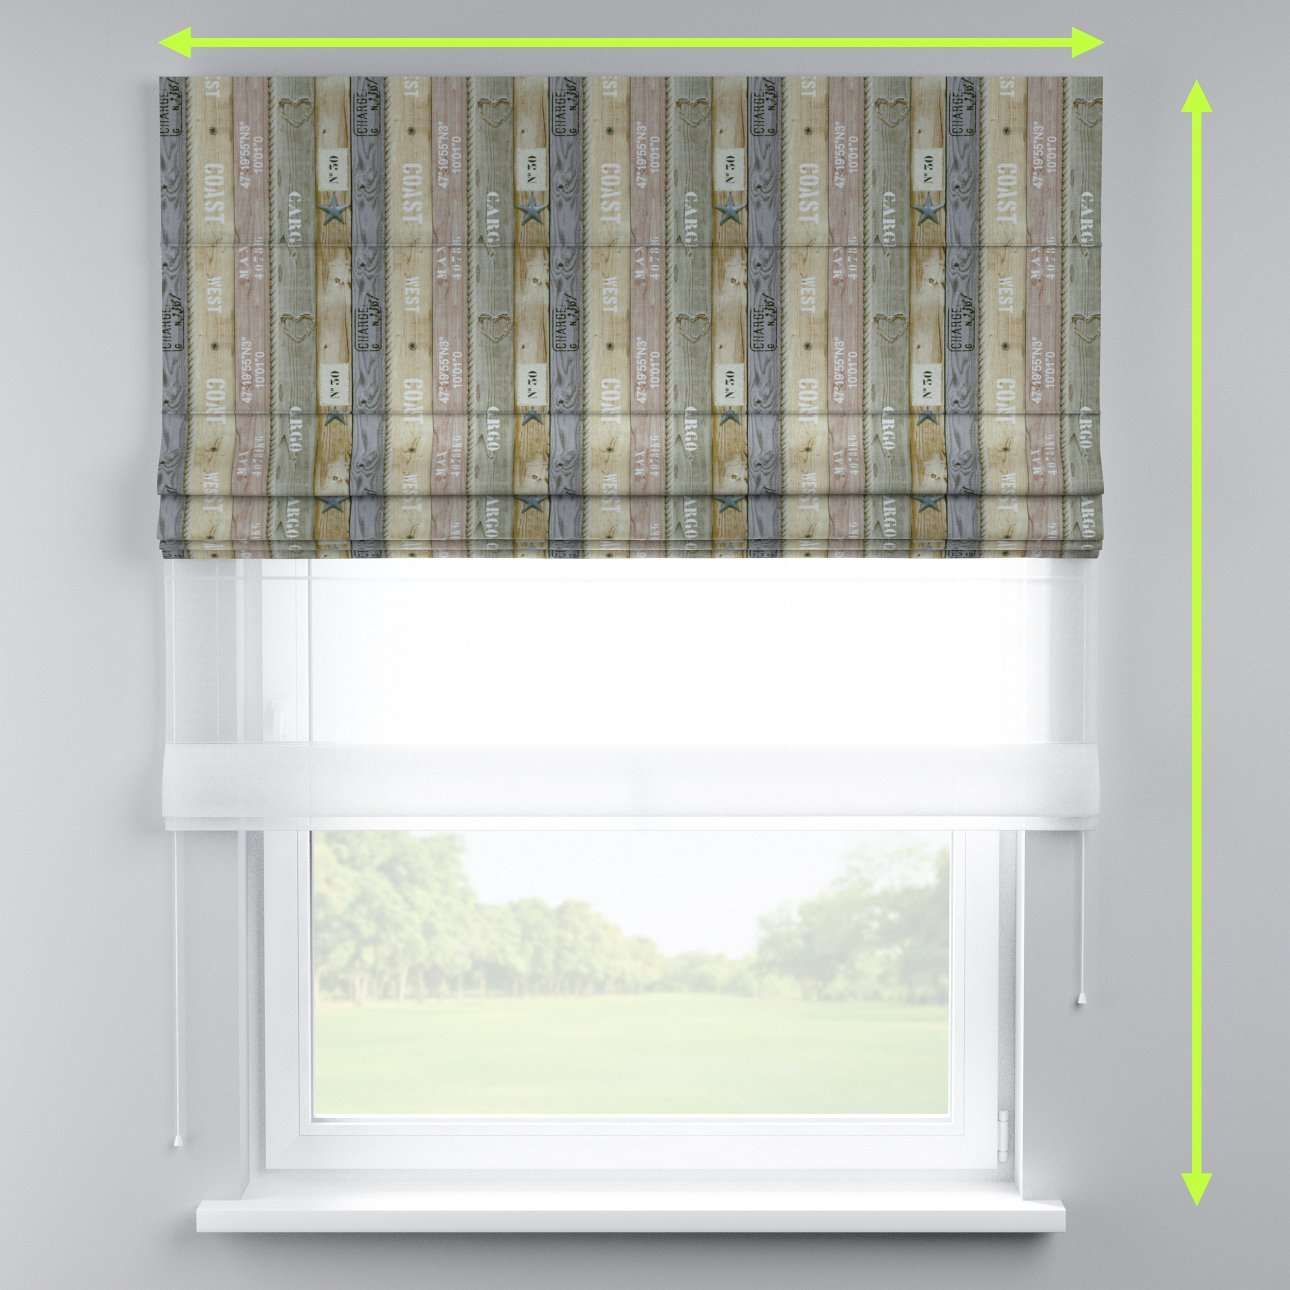 Voile and fabric roman blind (DUO II) in collection Marina, fabric: 140-16